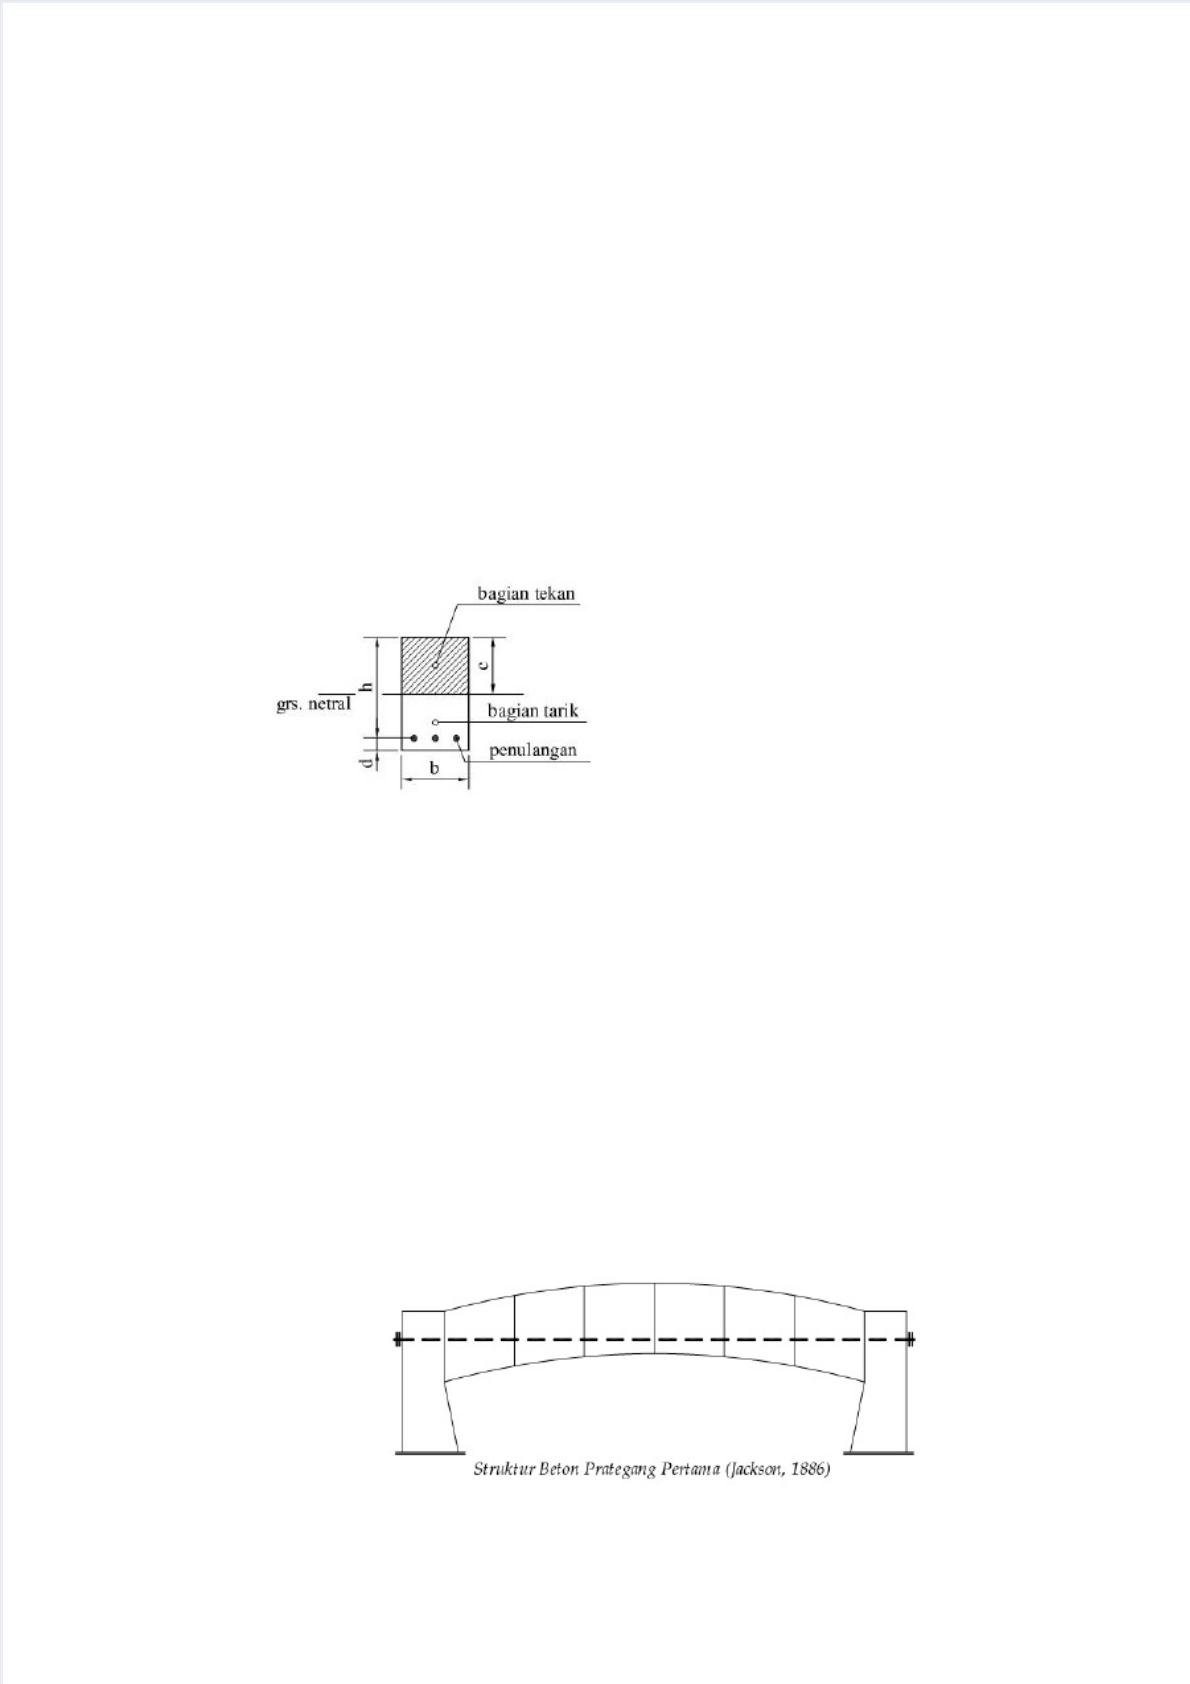 Beton Prategang Prestressed Concrete Pdf Document